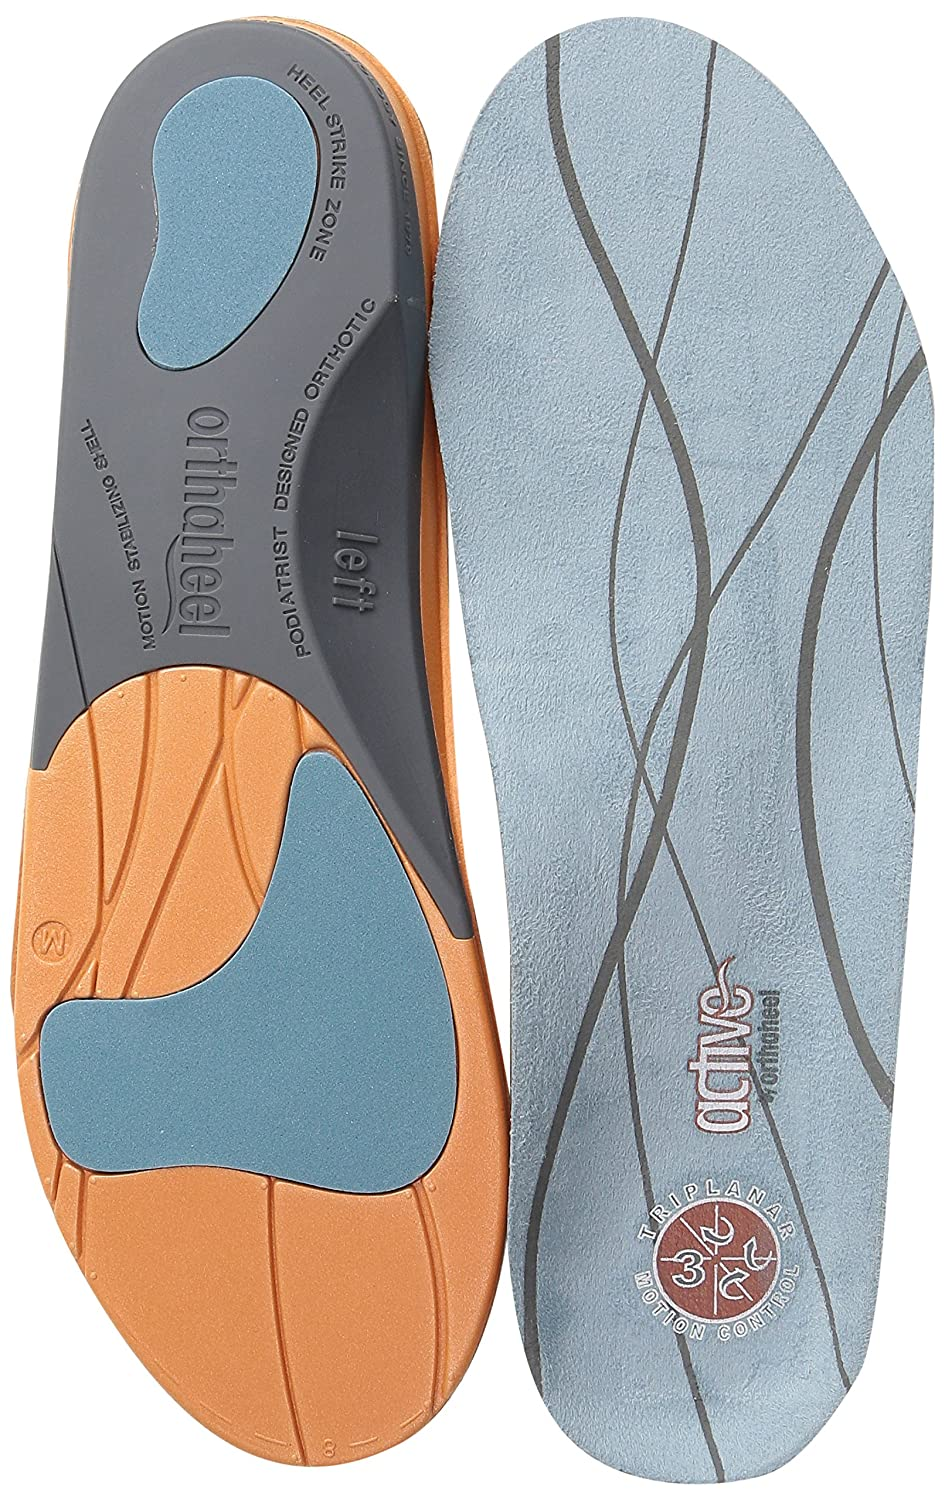 Orthaheel full-length orthotic